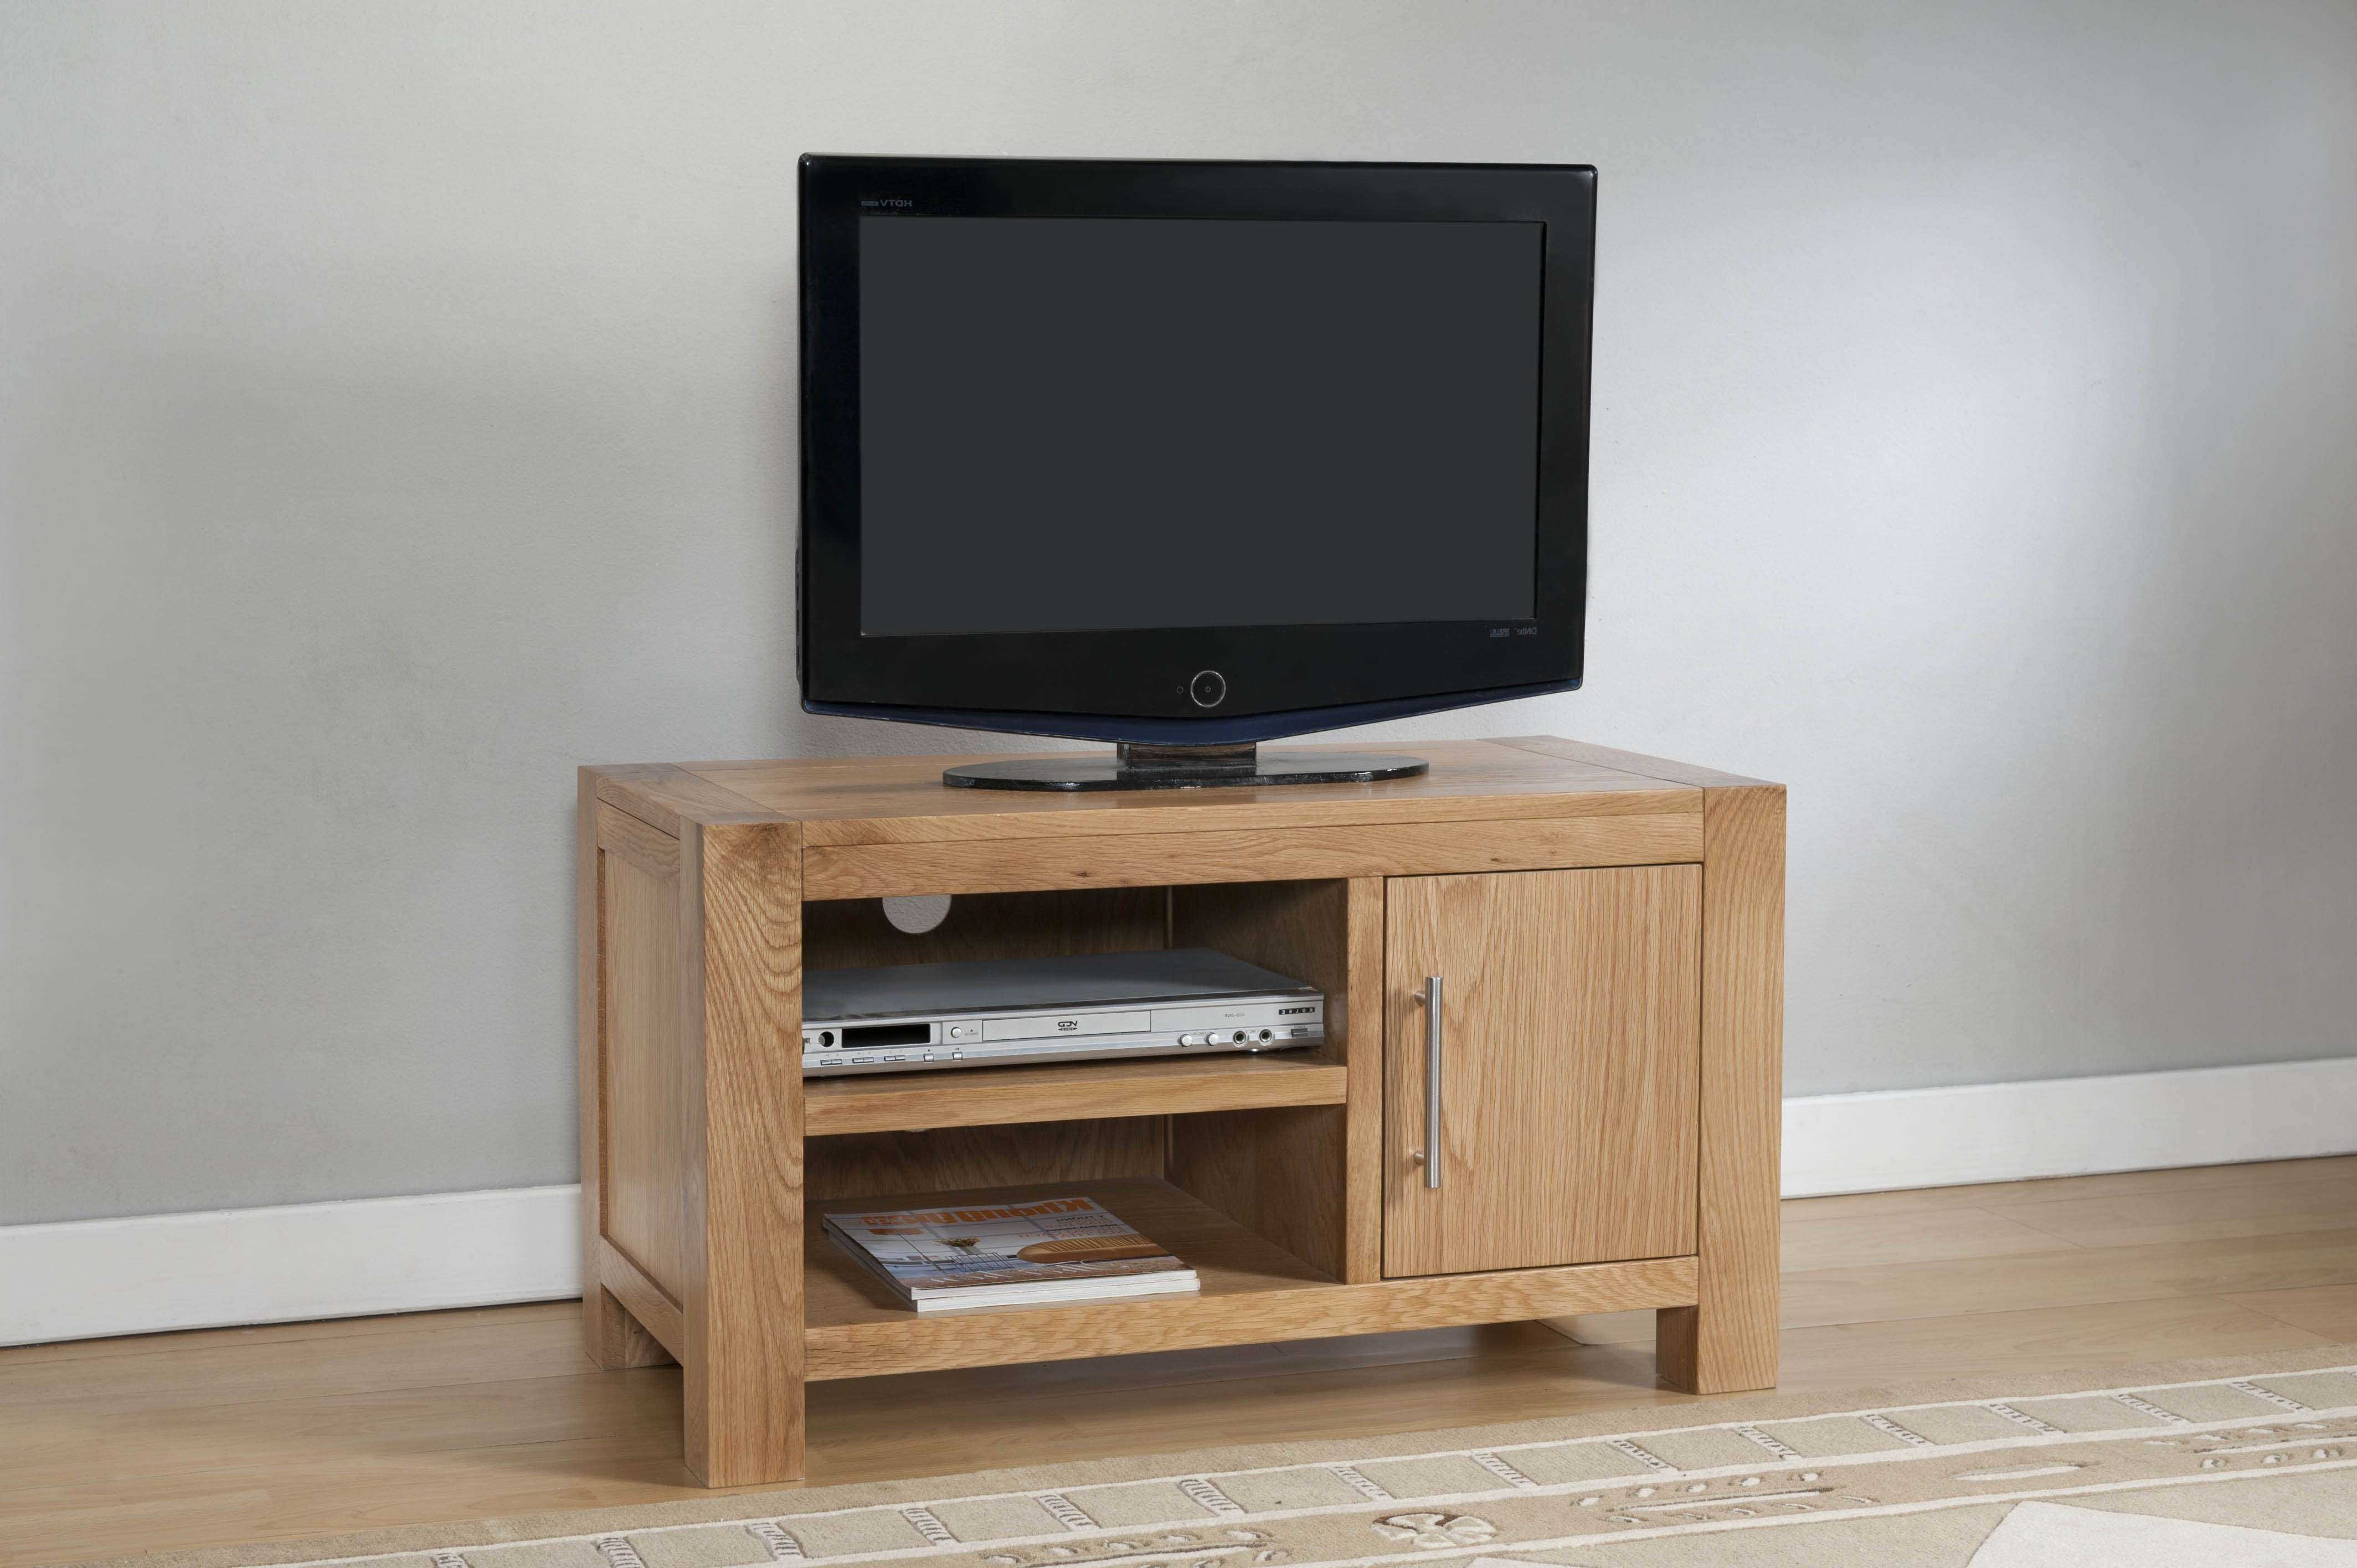 Milano Oak 1 Door Tv Stand With Shelf | Oak Furniture Solutions For Oak Tv Cabinets With Doors (View 7 of 20)